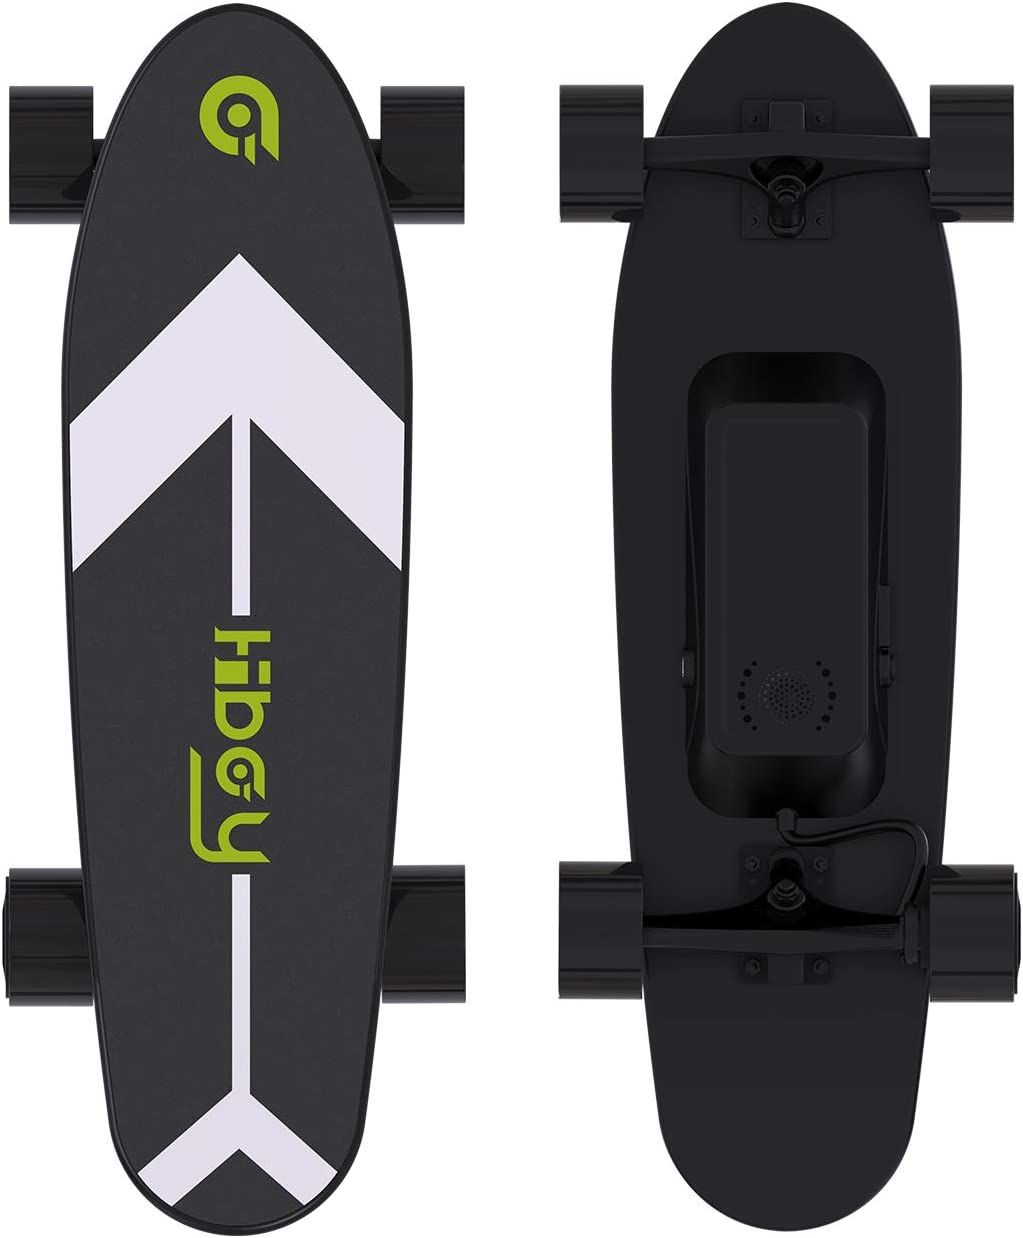 Hiboy Electric Skateboard with Wireless Remote E-Skateboard for Adults and Youths (S11)